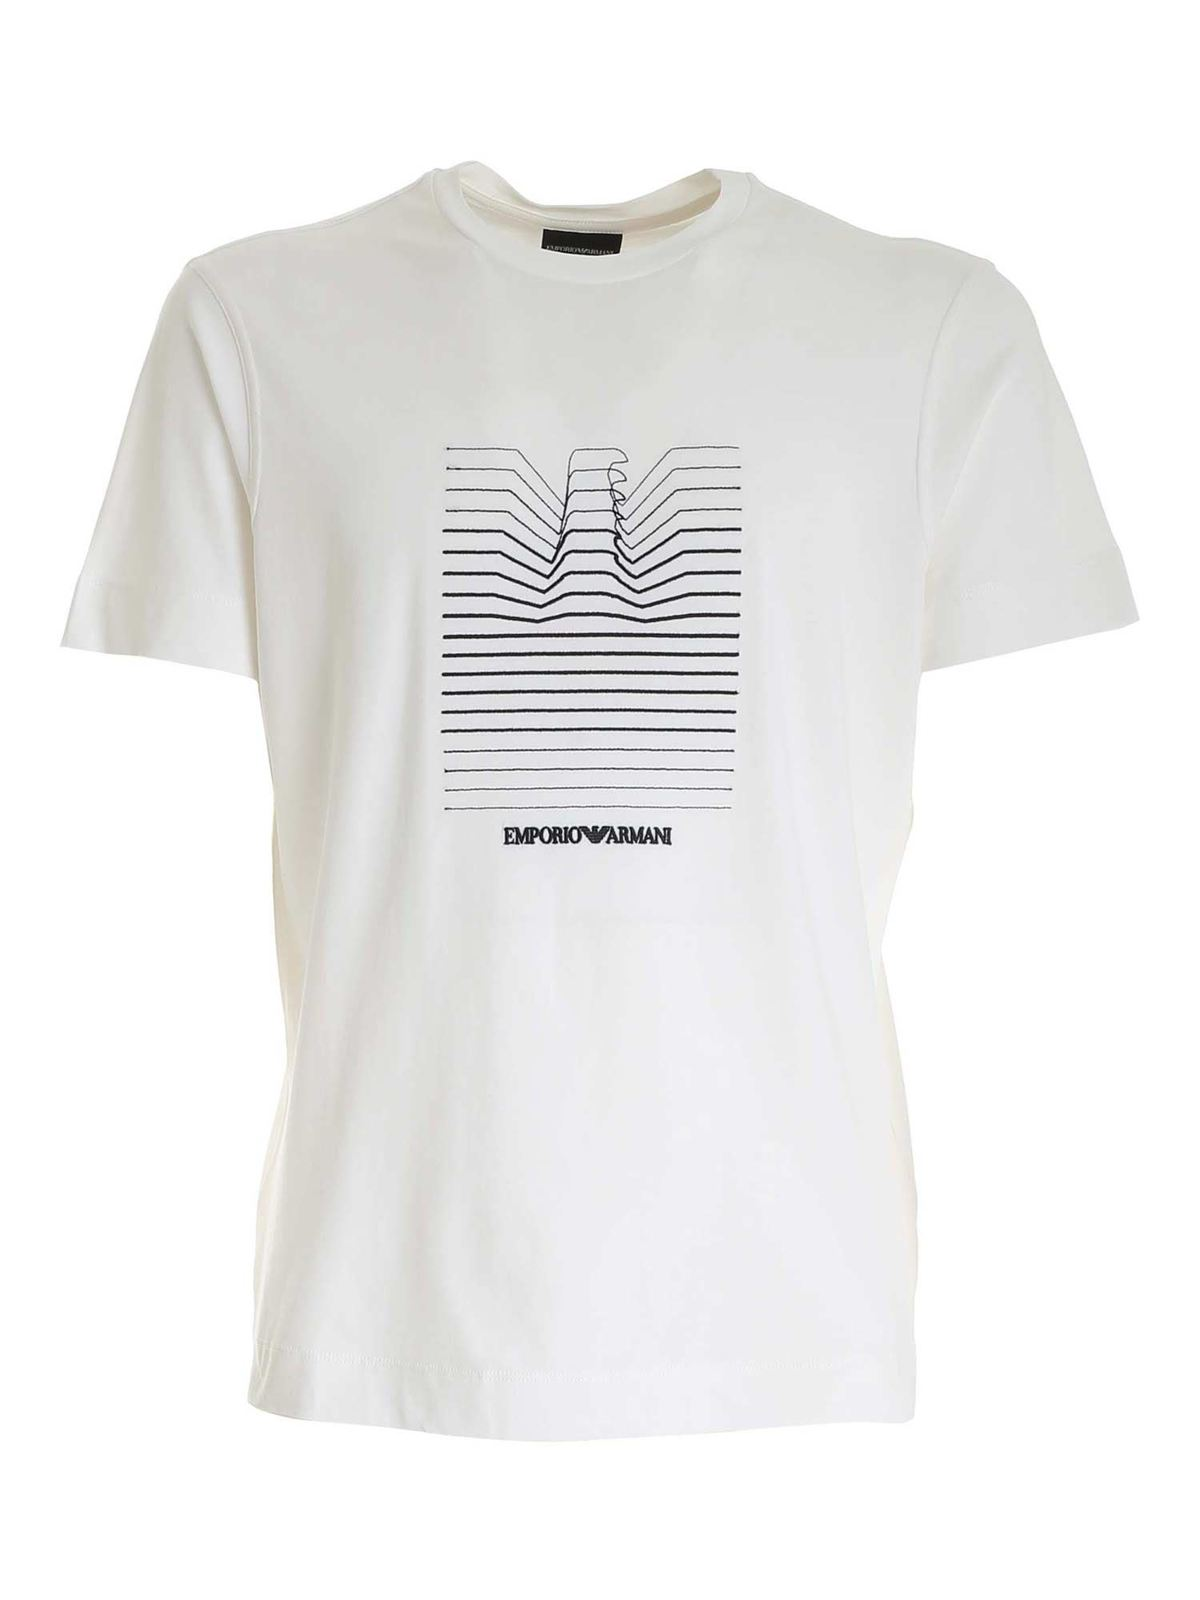 Emporio Armani CONTRASTING EMBROIDERY T-SHIRT IN WHITE